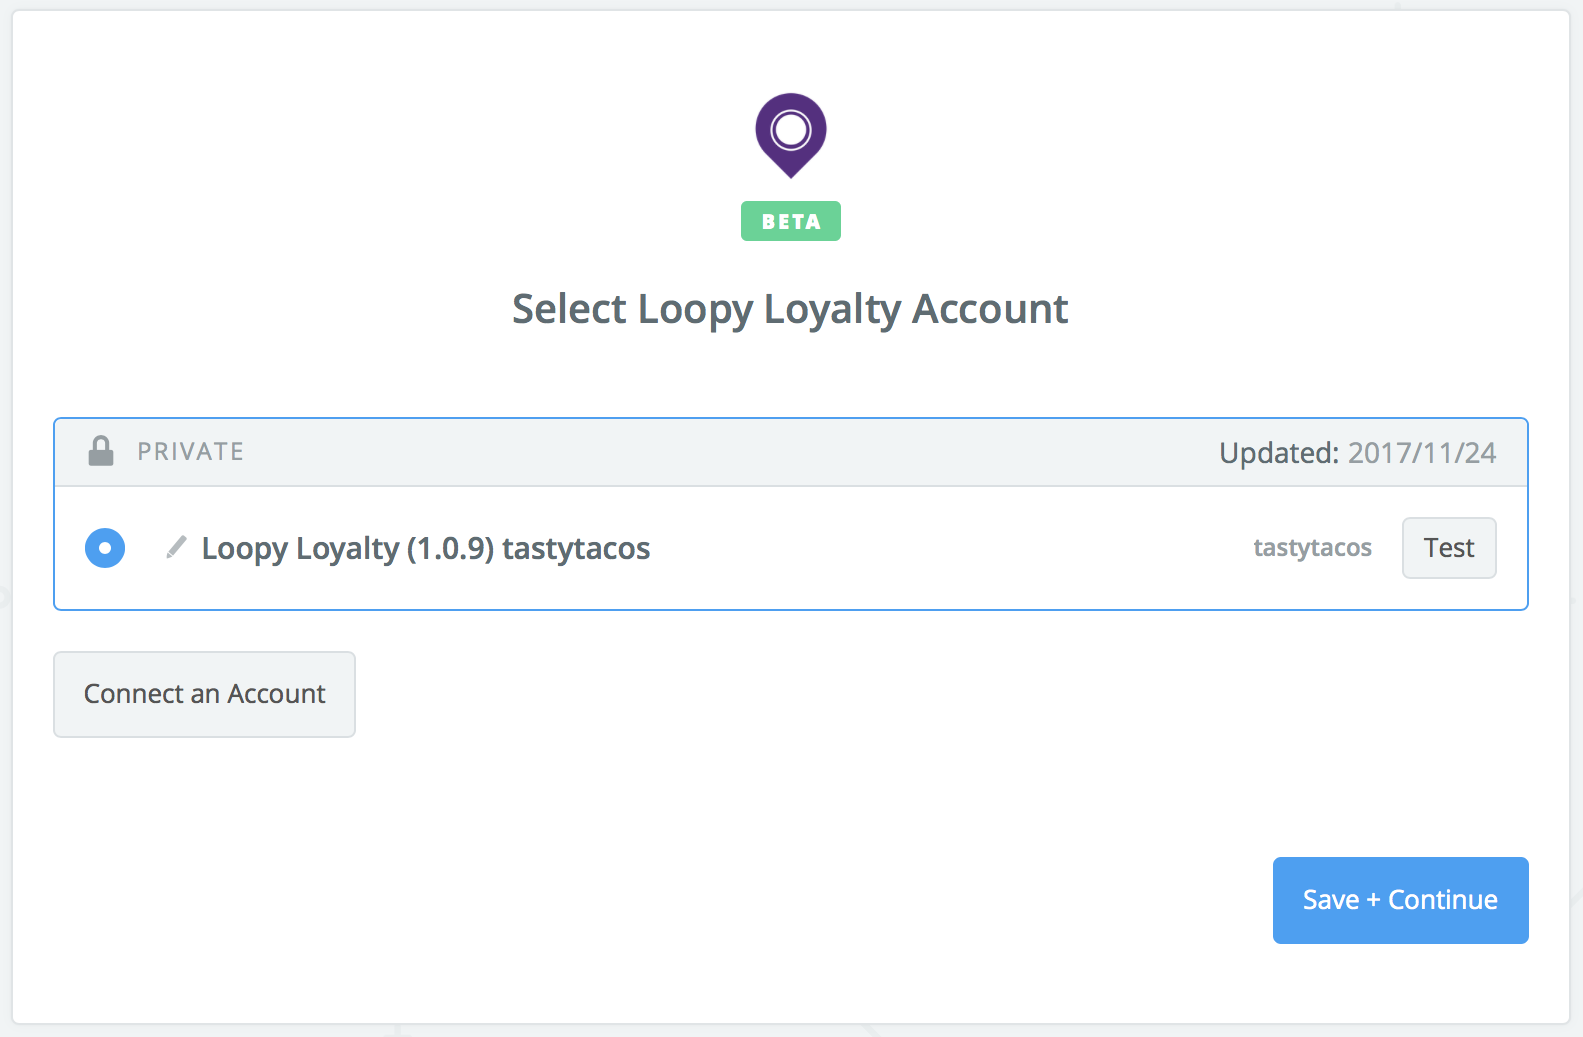 Loopy Loyalty connection successful